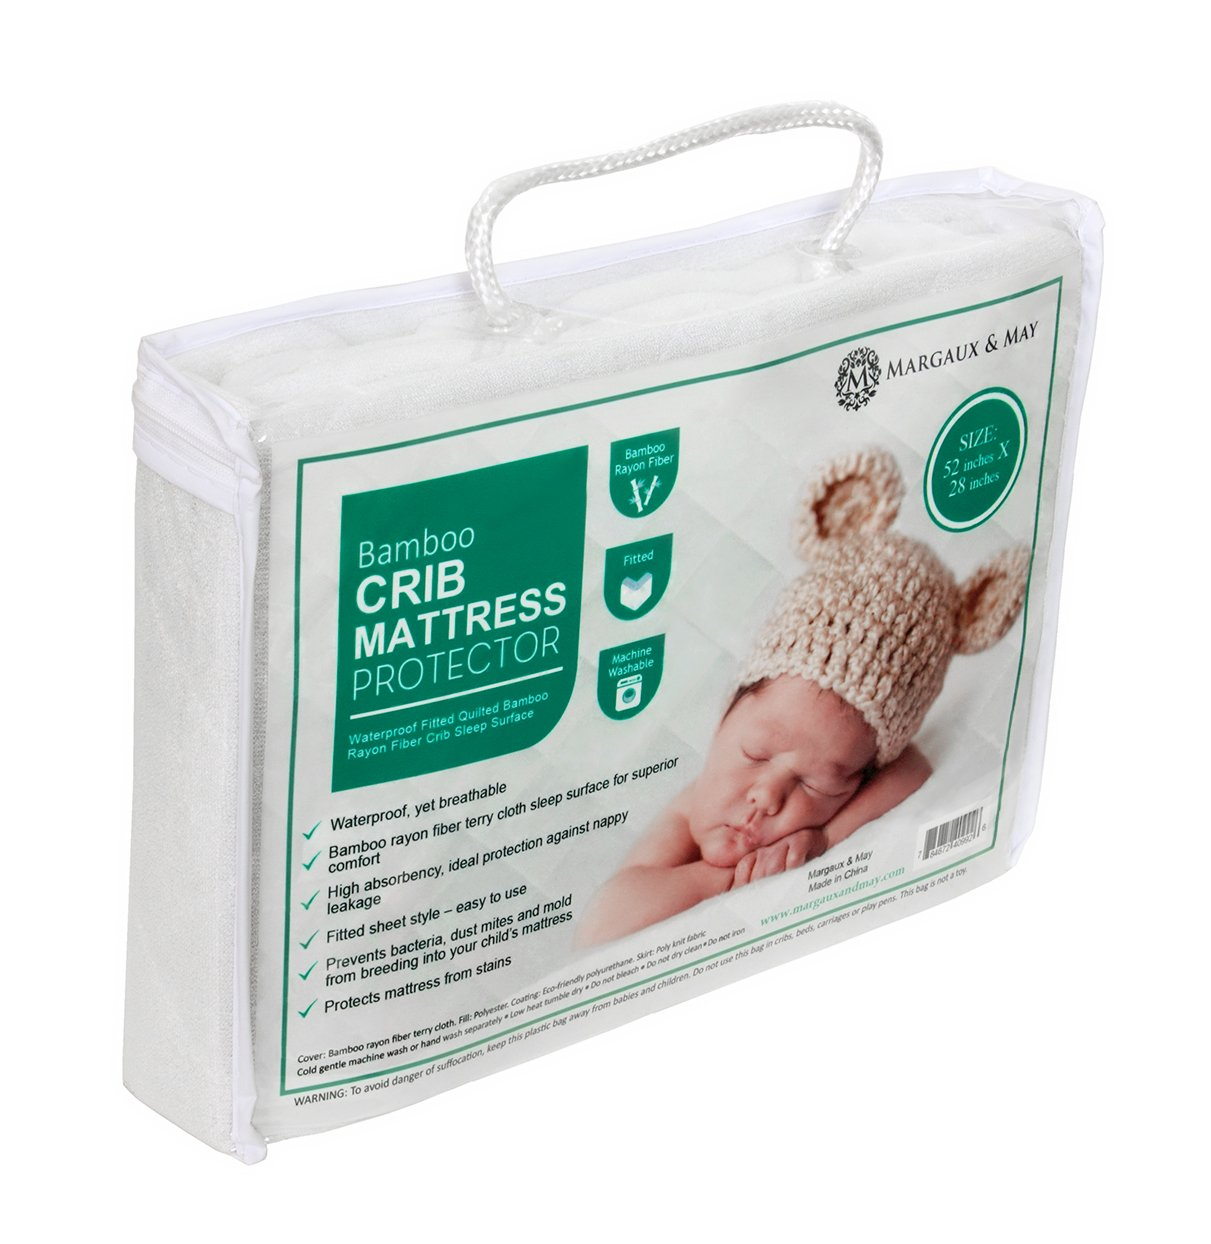 Baby crib mattress amazon - Amazon Com Ultra Soft Waterproof Crib Mattress Protector Pad From Bamboo Rayon Fiber By Margaux May Fitted Quilted Mattress Protector Pad For Your